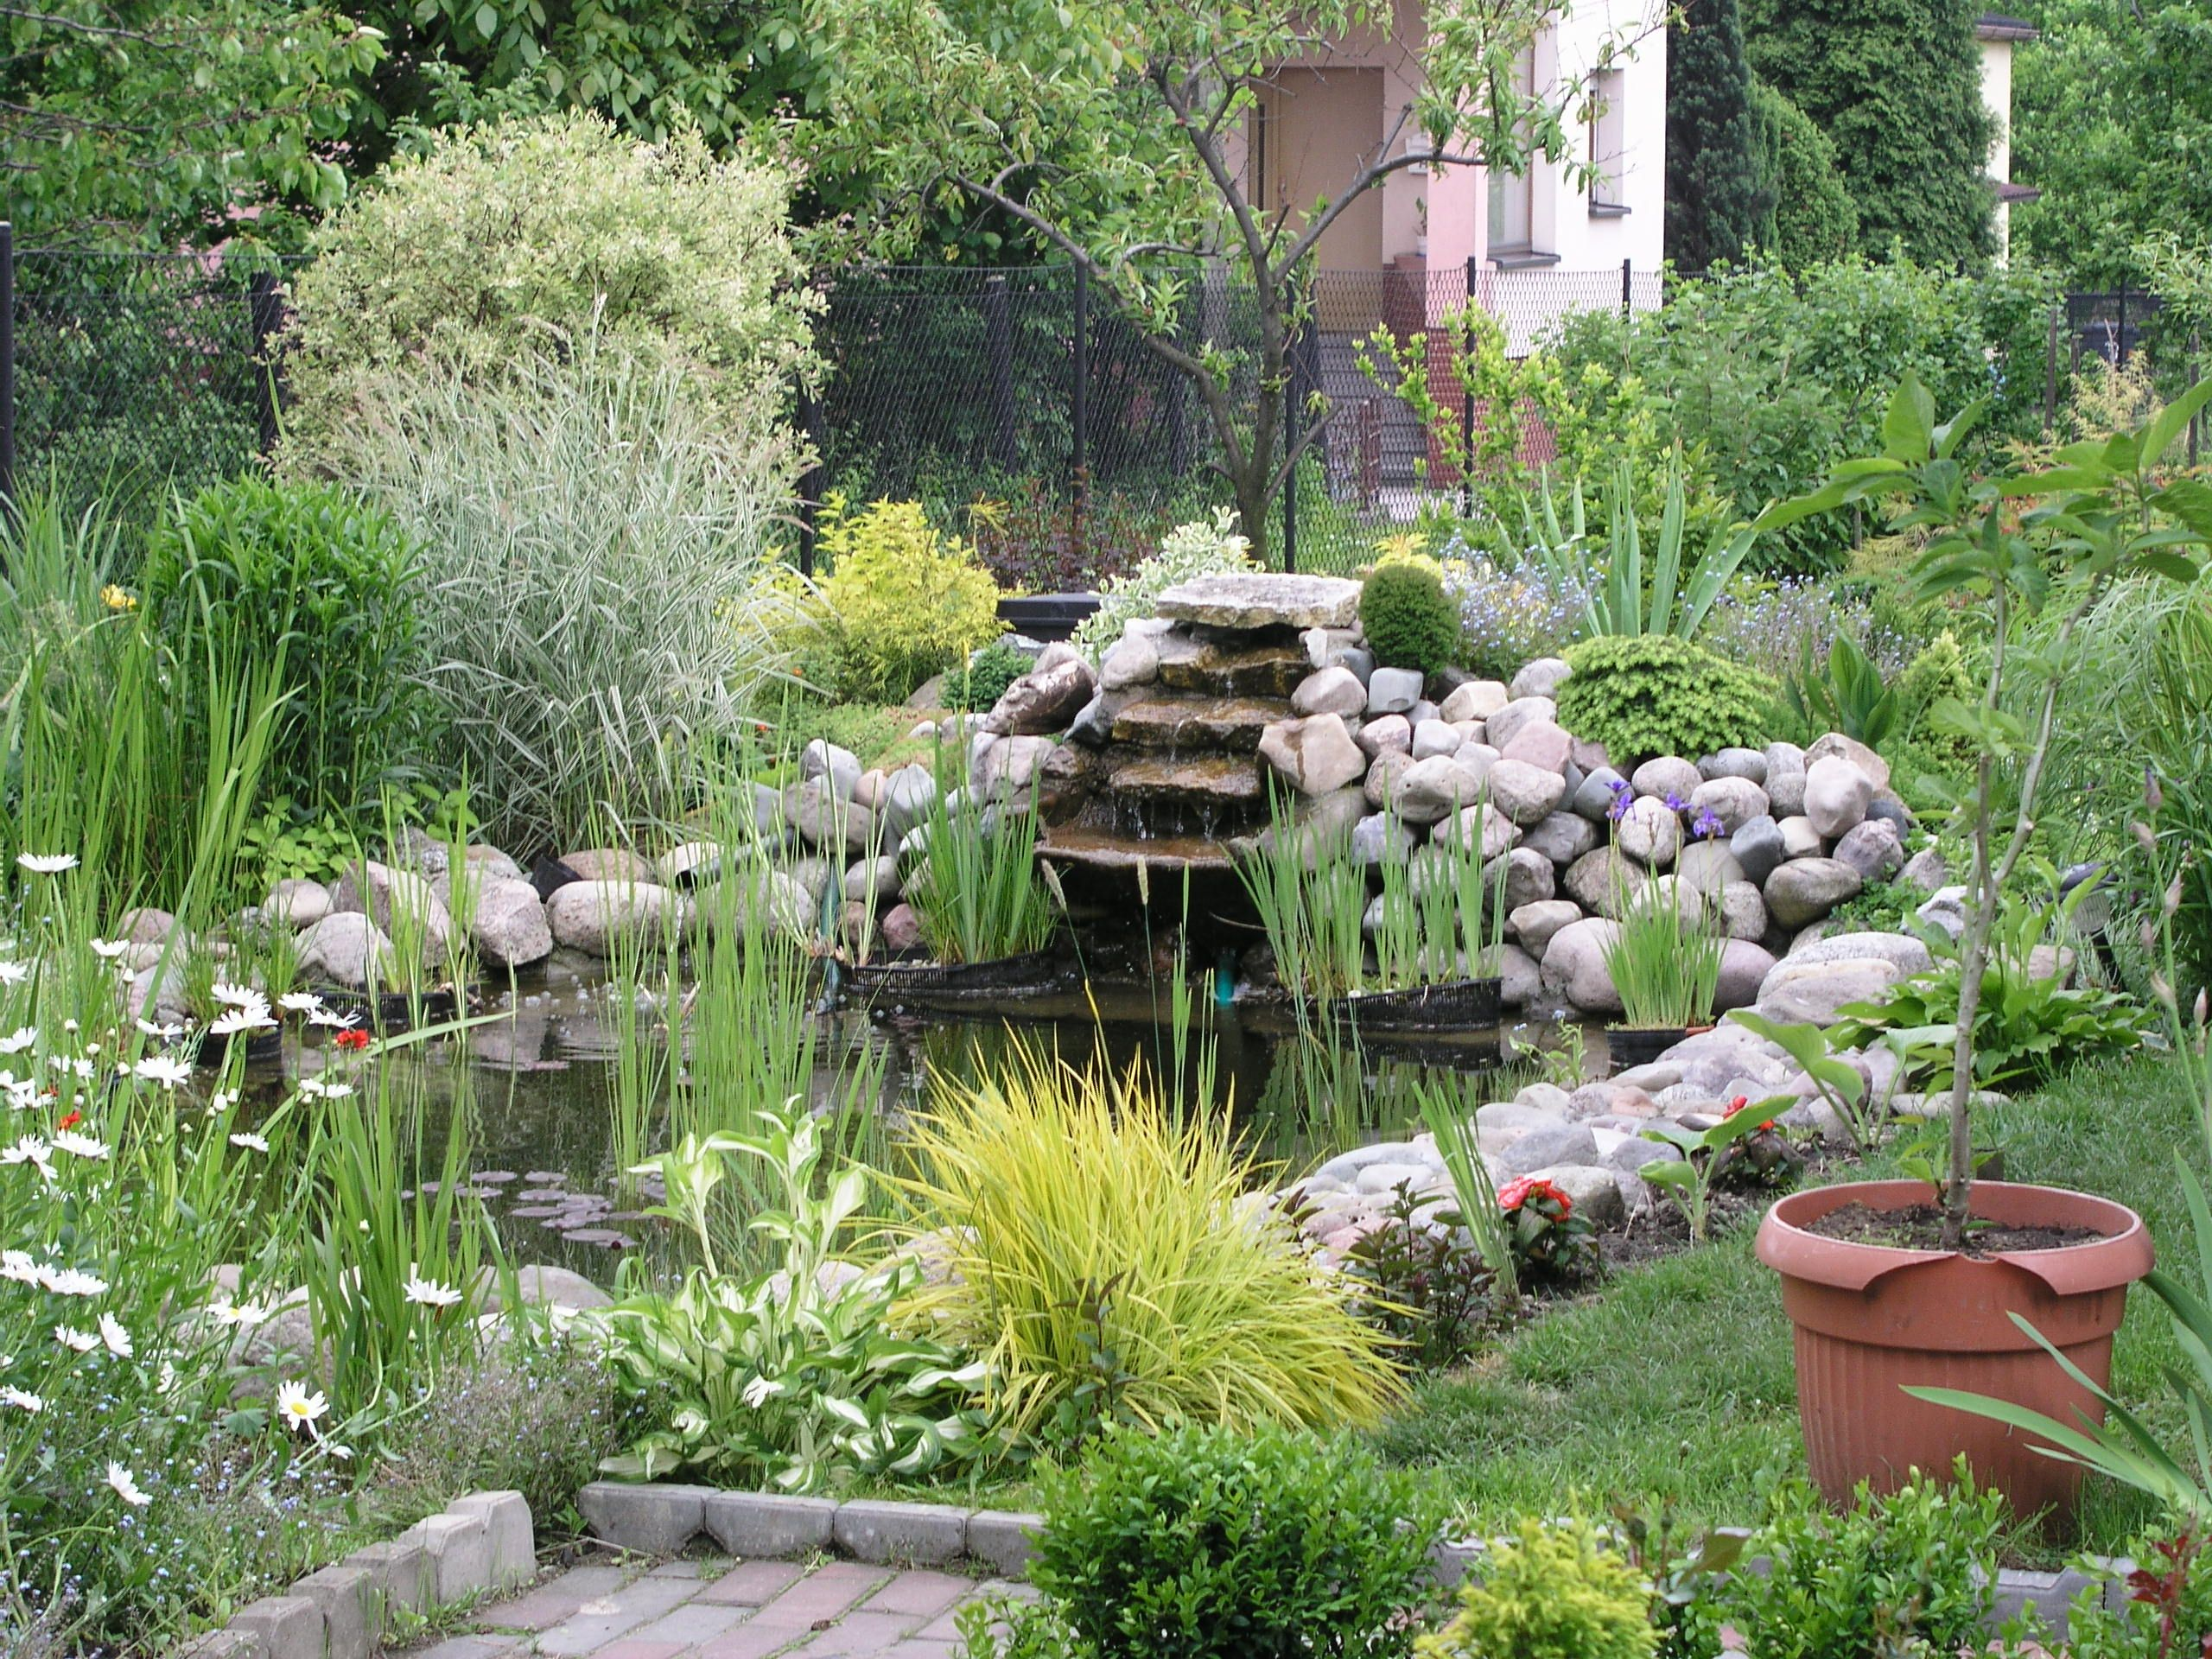 Ponds Backyard Photos : FileGarden pond 3jpg  Wikimedia Commons